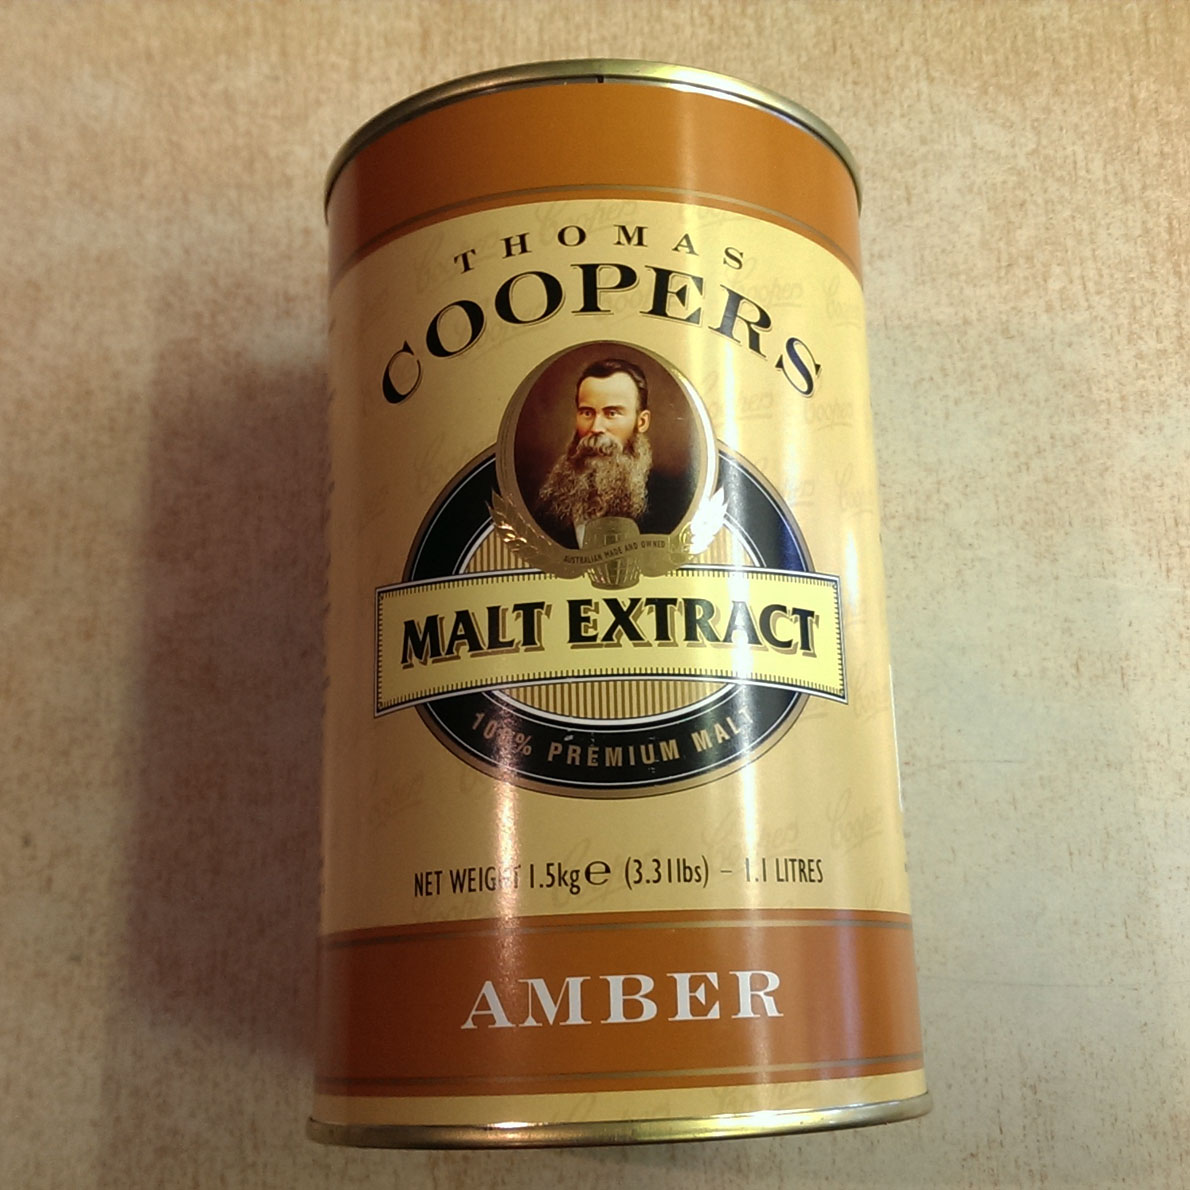 coopers ipa kit instructions